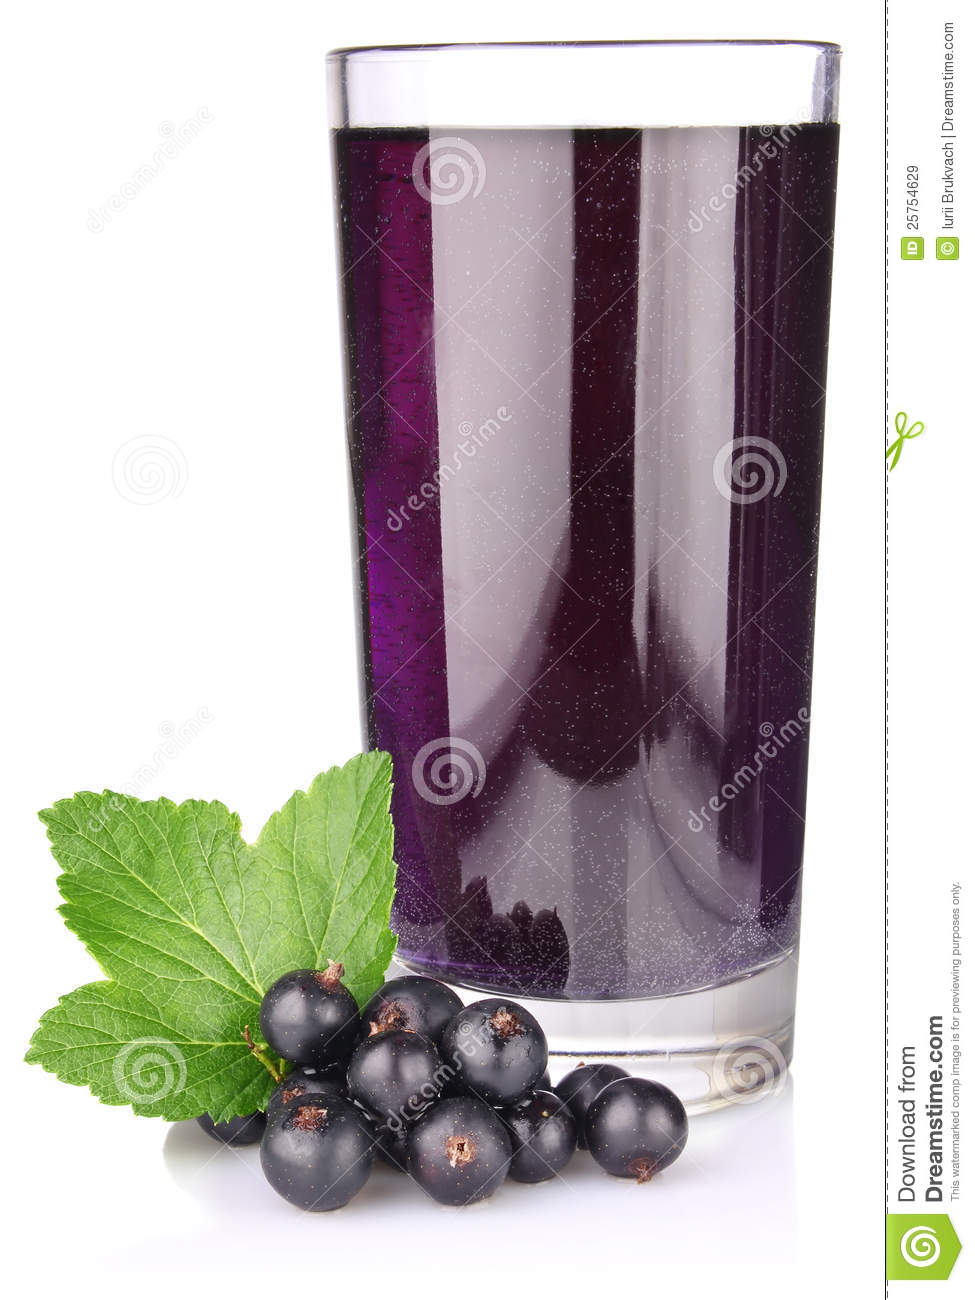 Black Currant With Juice And Green Leaf Royalty Free Stock Images.